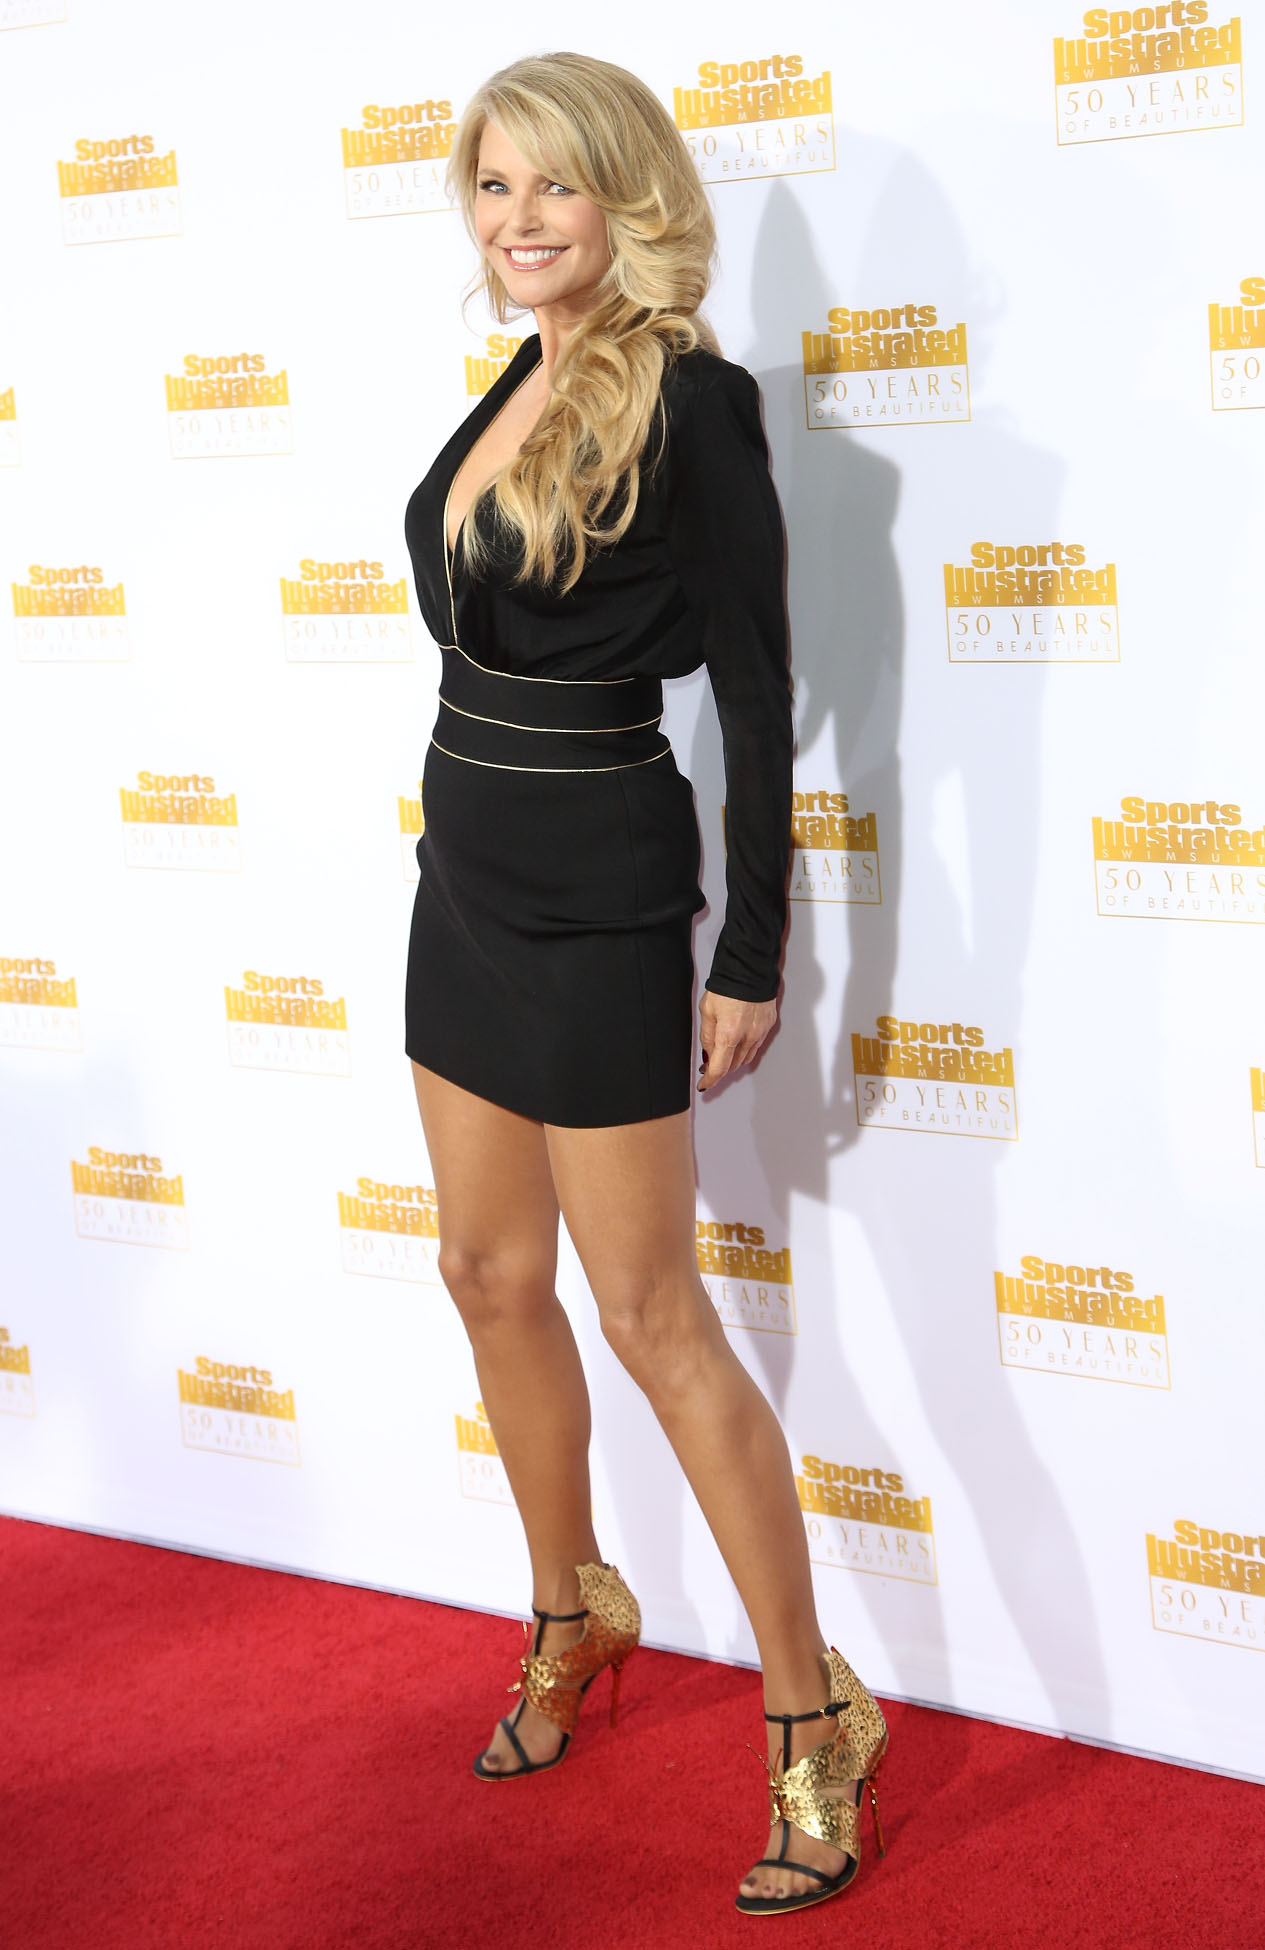 christie brinkley diet